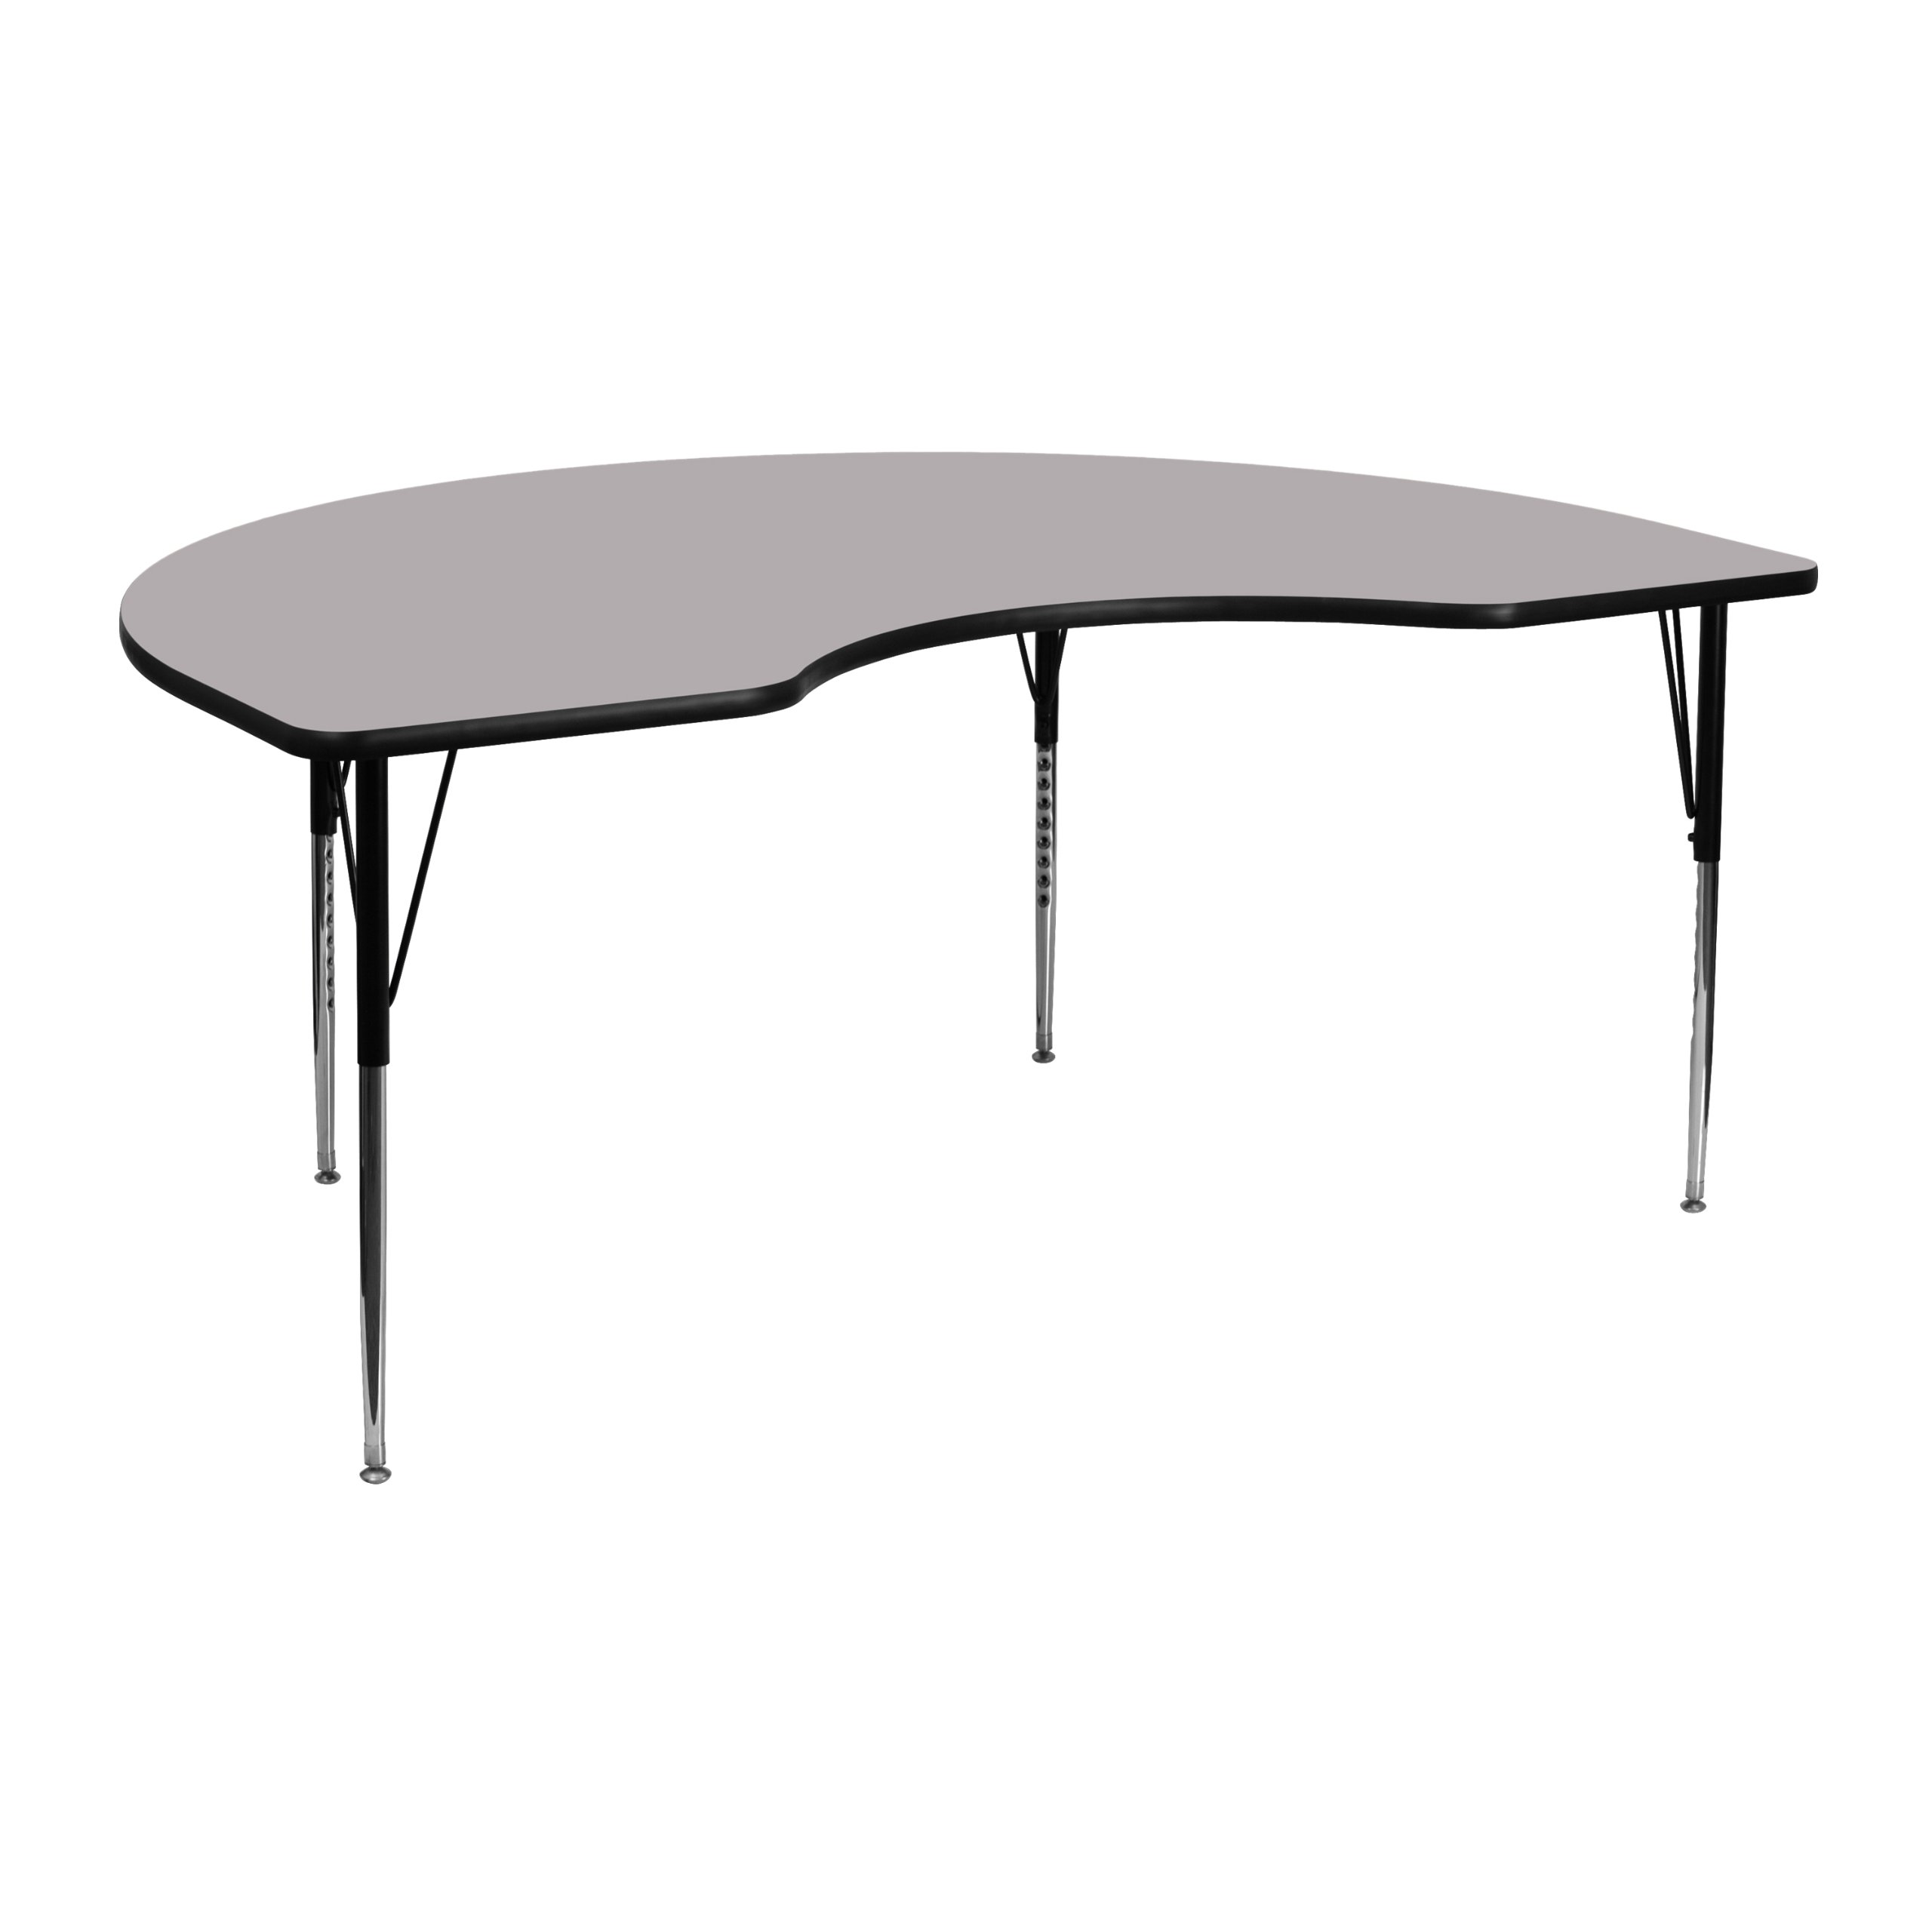 Flash Furniture 48''W x 72''L Kidney Grey Thermal Laminate Activity Table - Standard Height Adjustable Legs by Flash Furniture